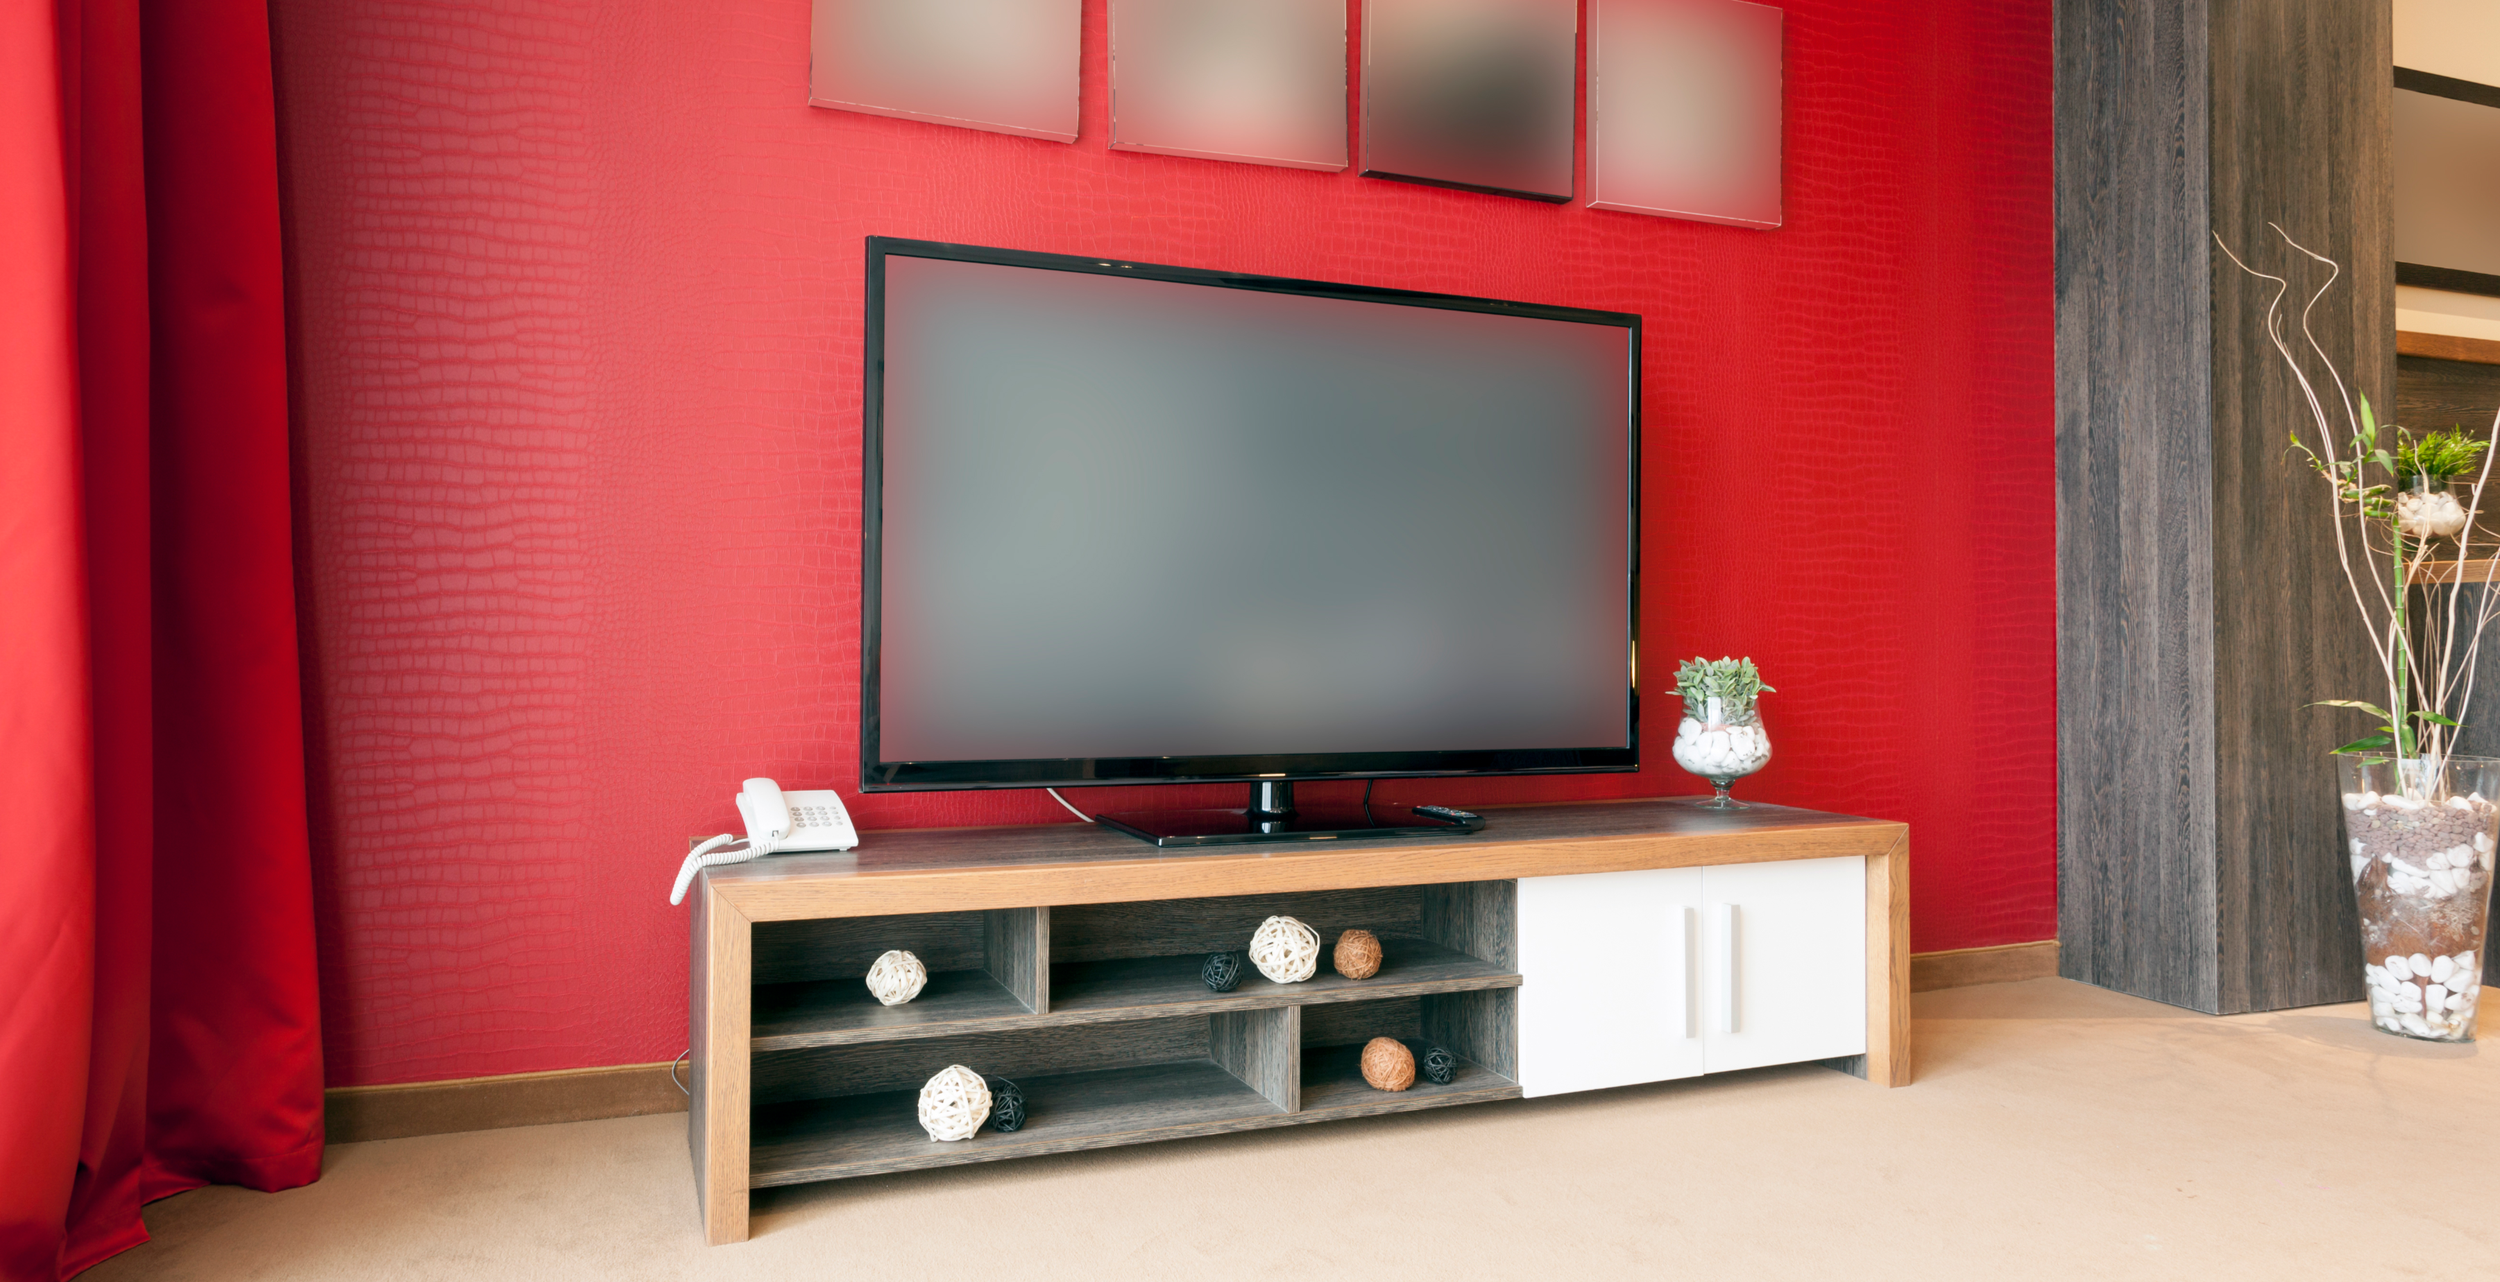 Dish Tv And Internet >> 5 Tips For a Legit Entertainment Room in a Small Space - THE DIG